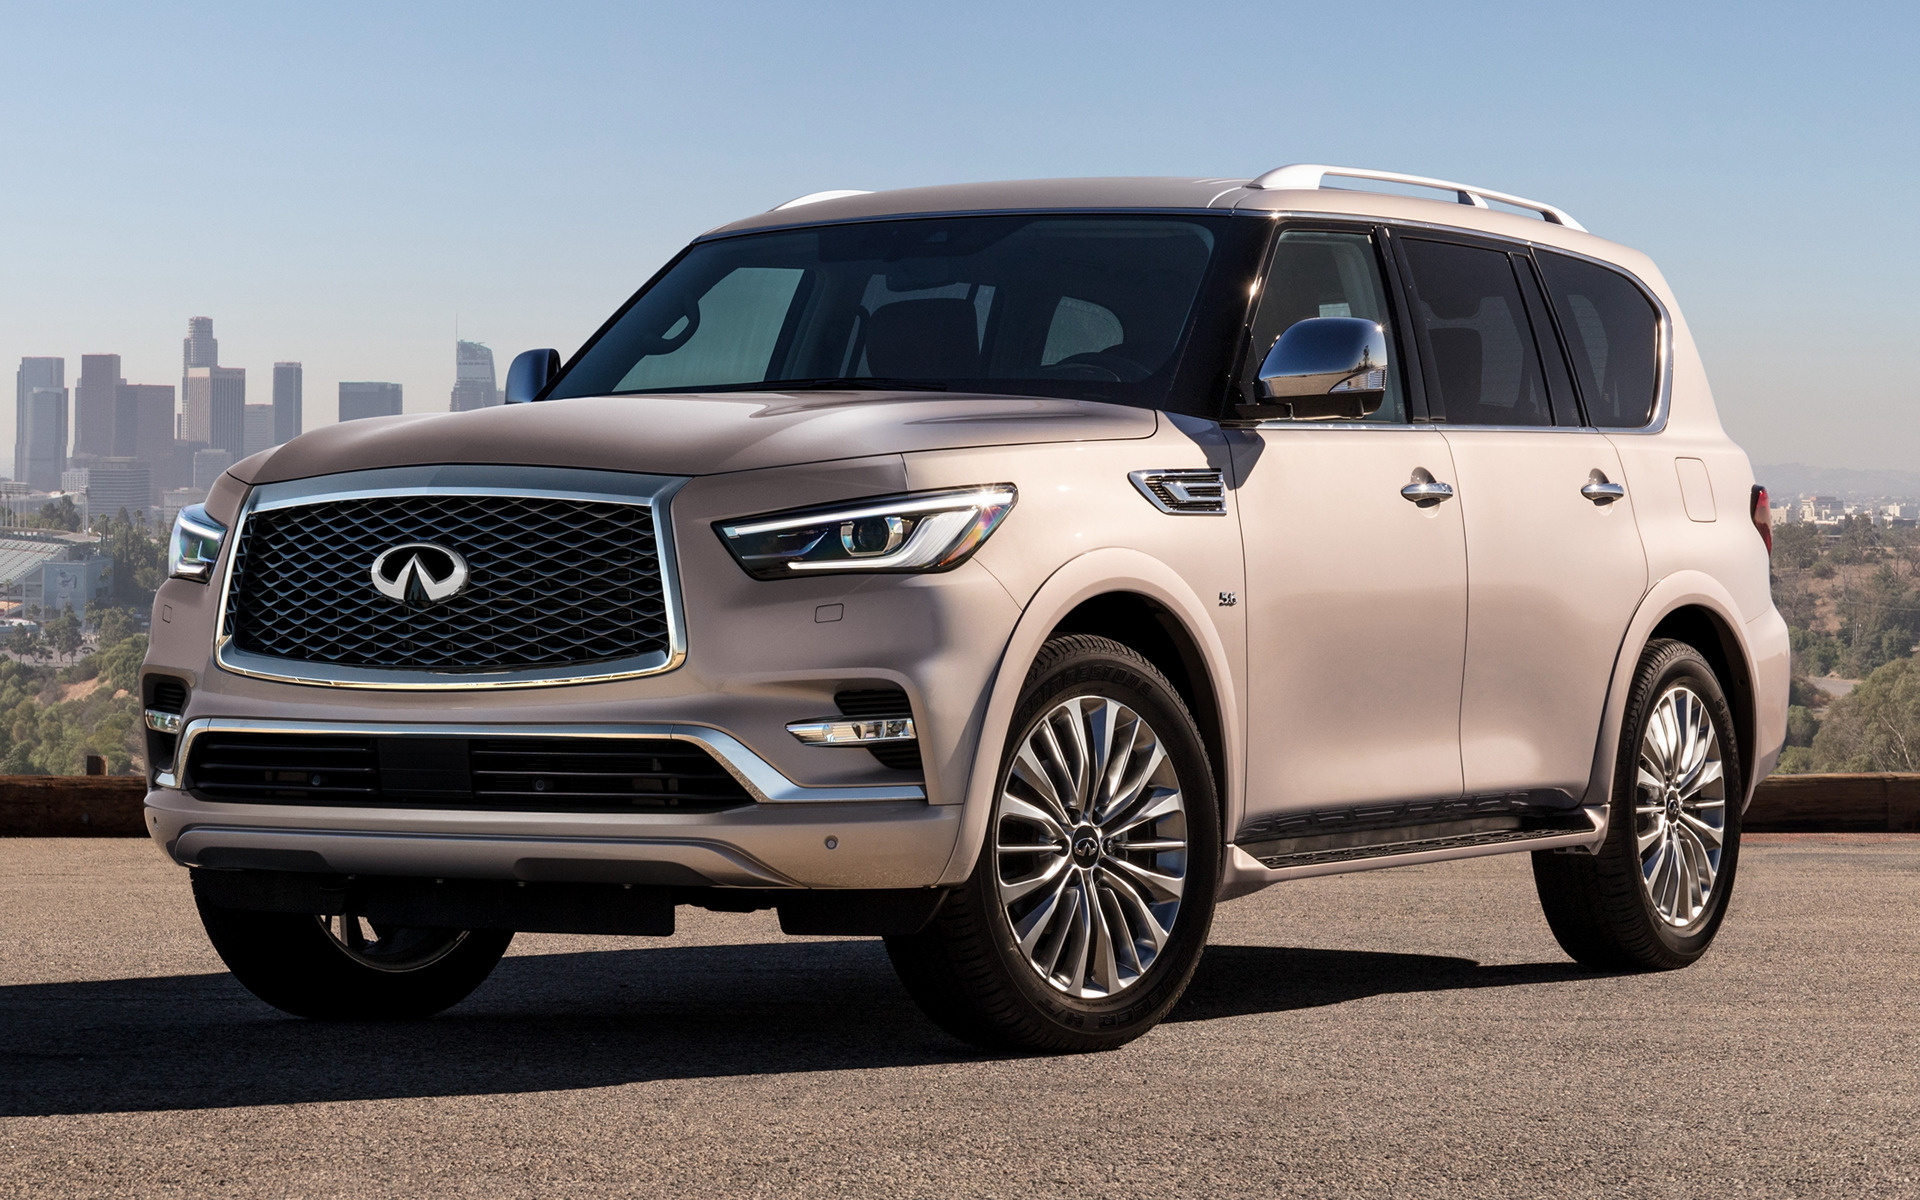 1920x1200 - Infiniti QX80 Wallpapers 16